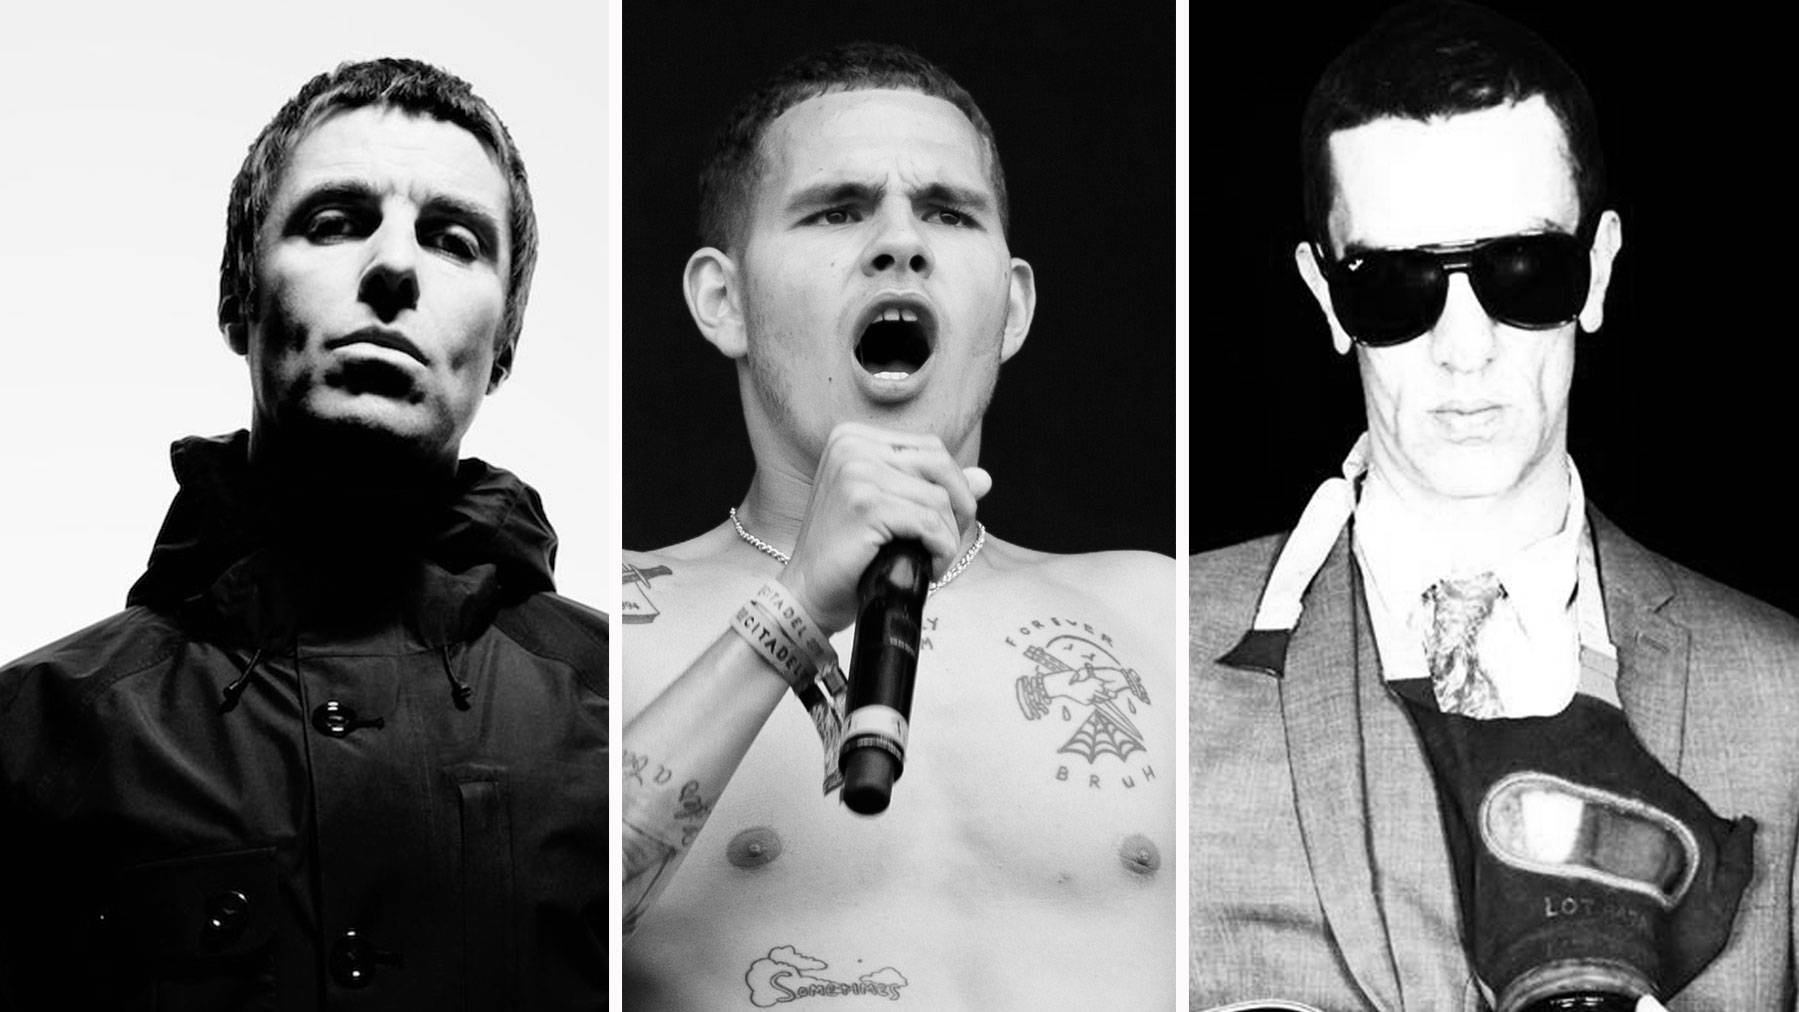 Slowthai has a message for Liam Gallagher fans who'd rather see Richard Ashcroft as support